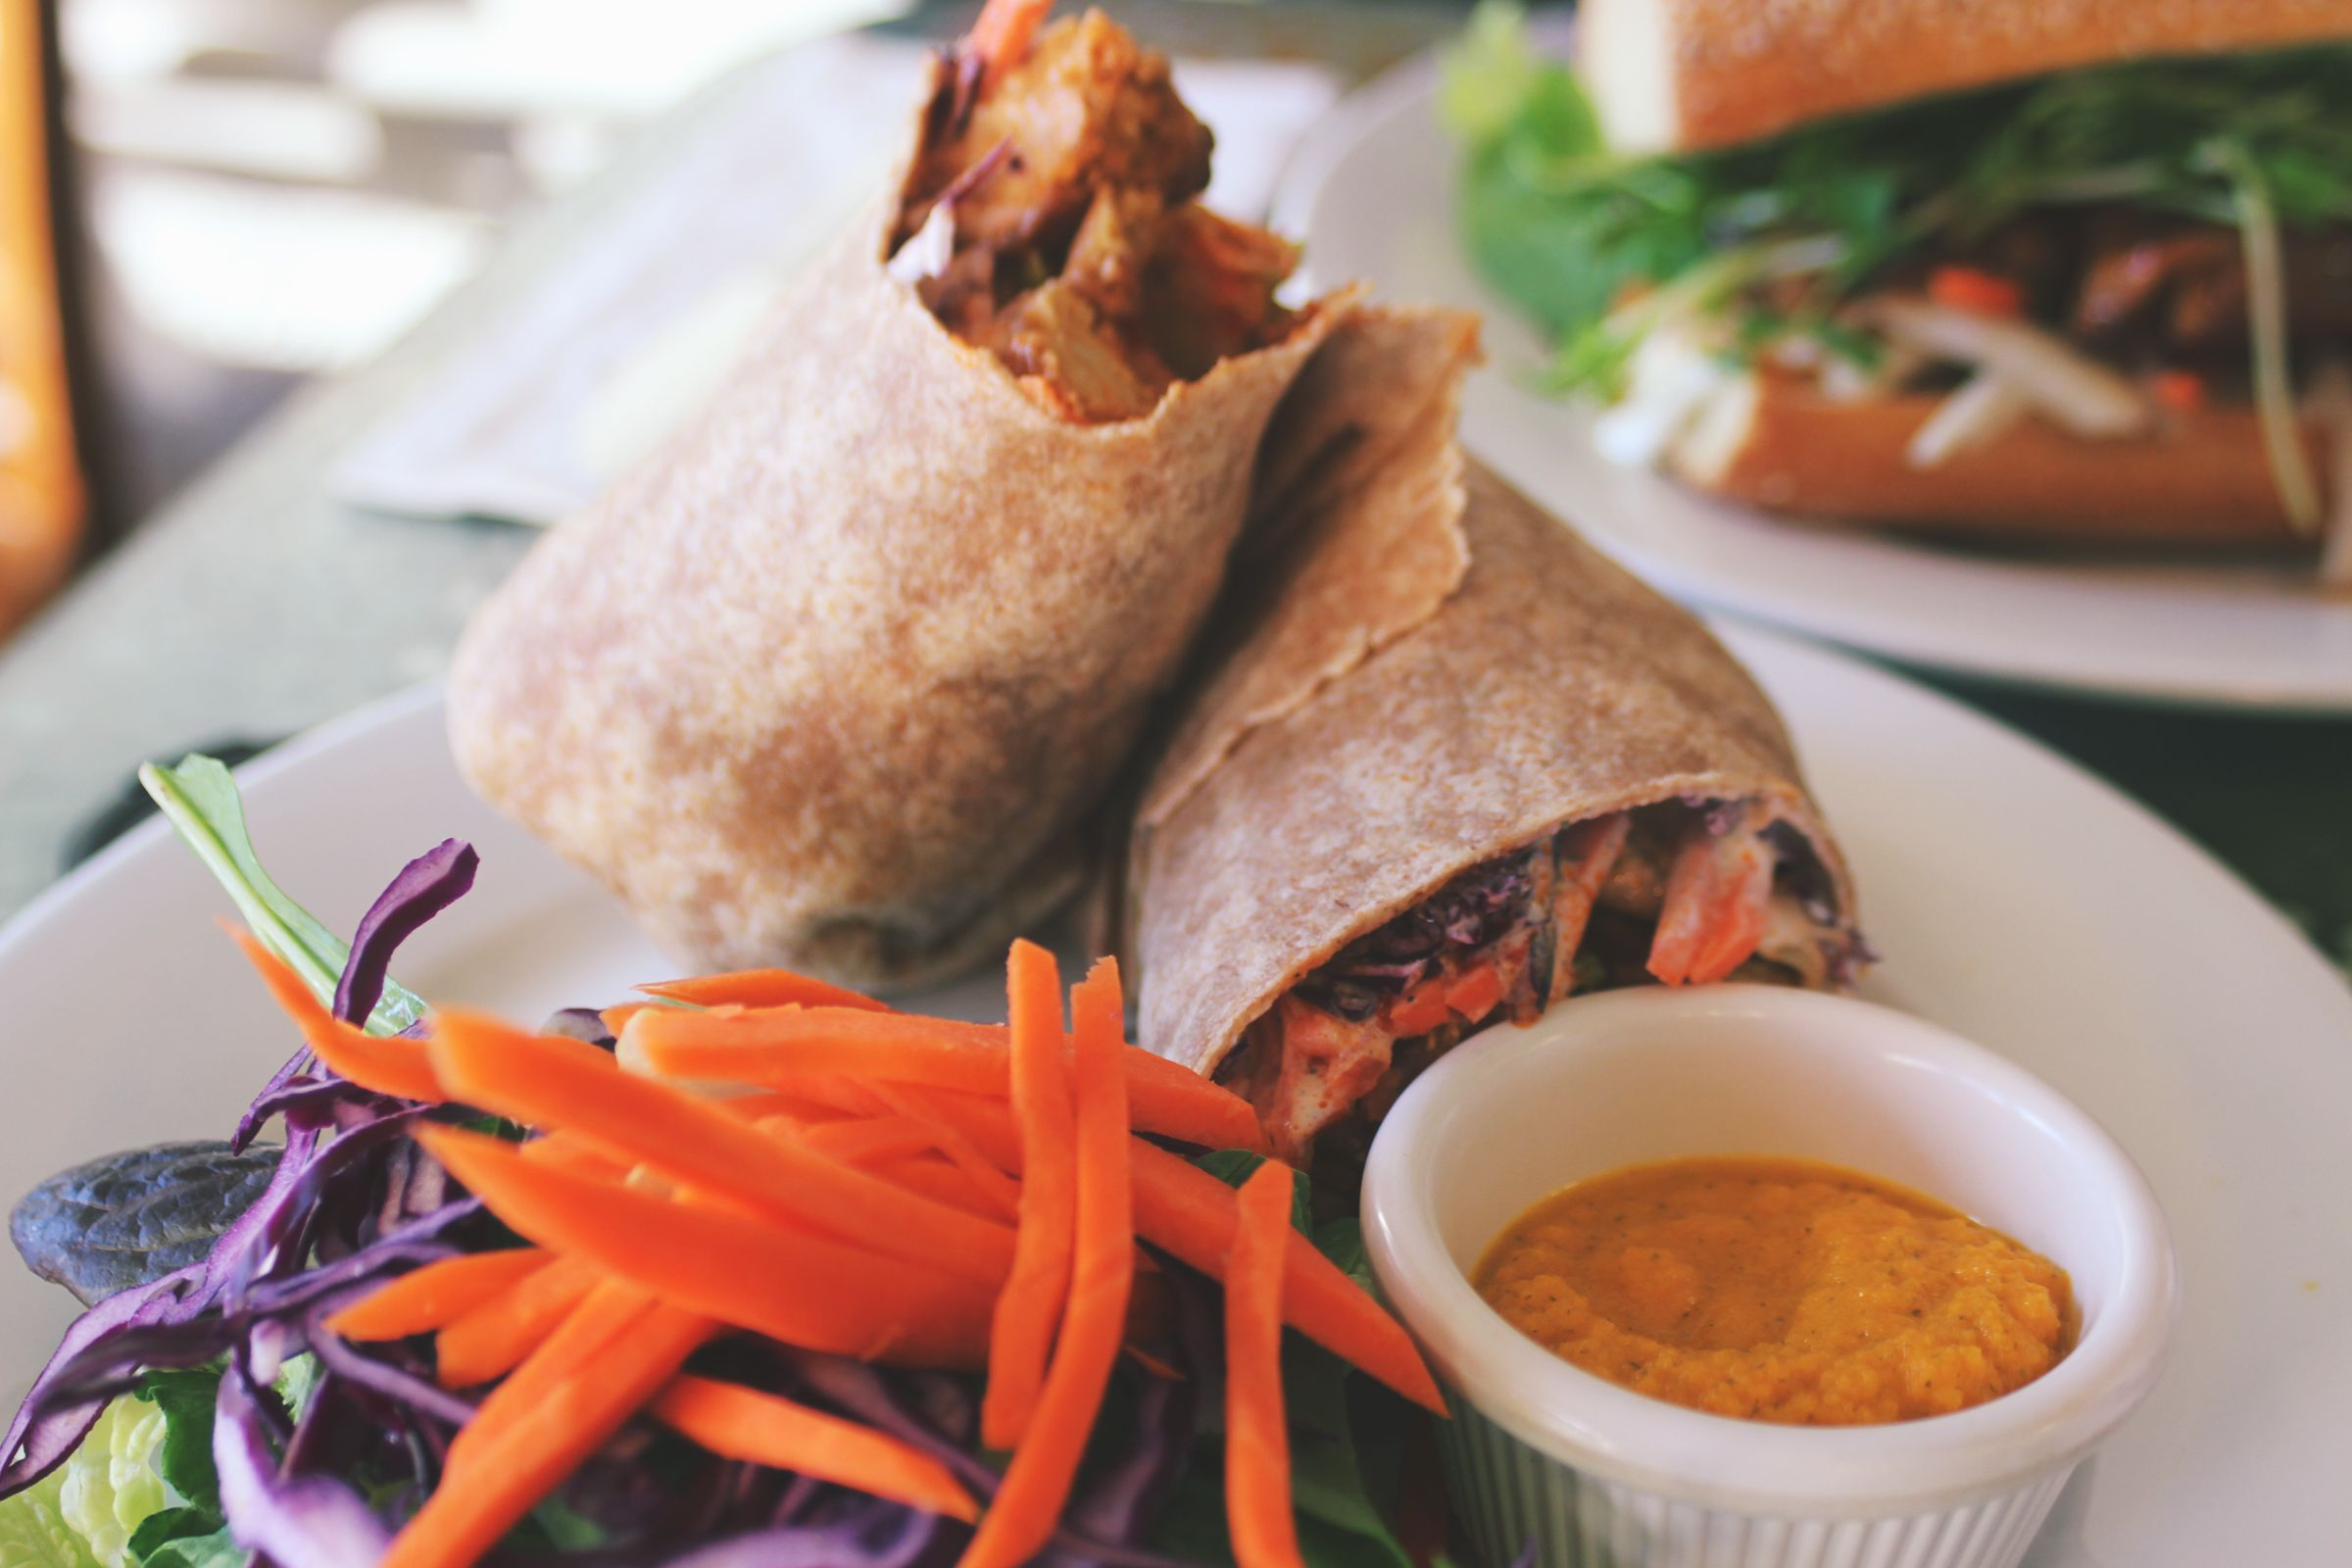 Review Of This Yummy Bbq Tempeh Wrap From Good Karma Red Bank Nj